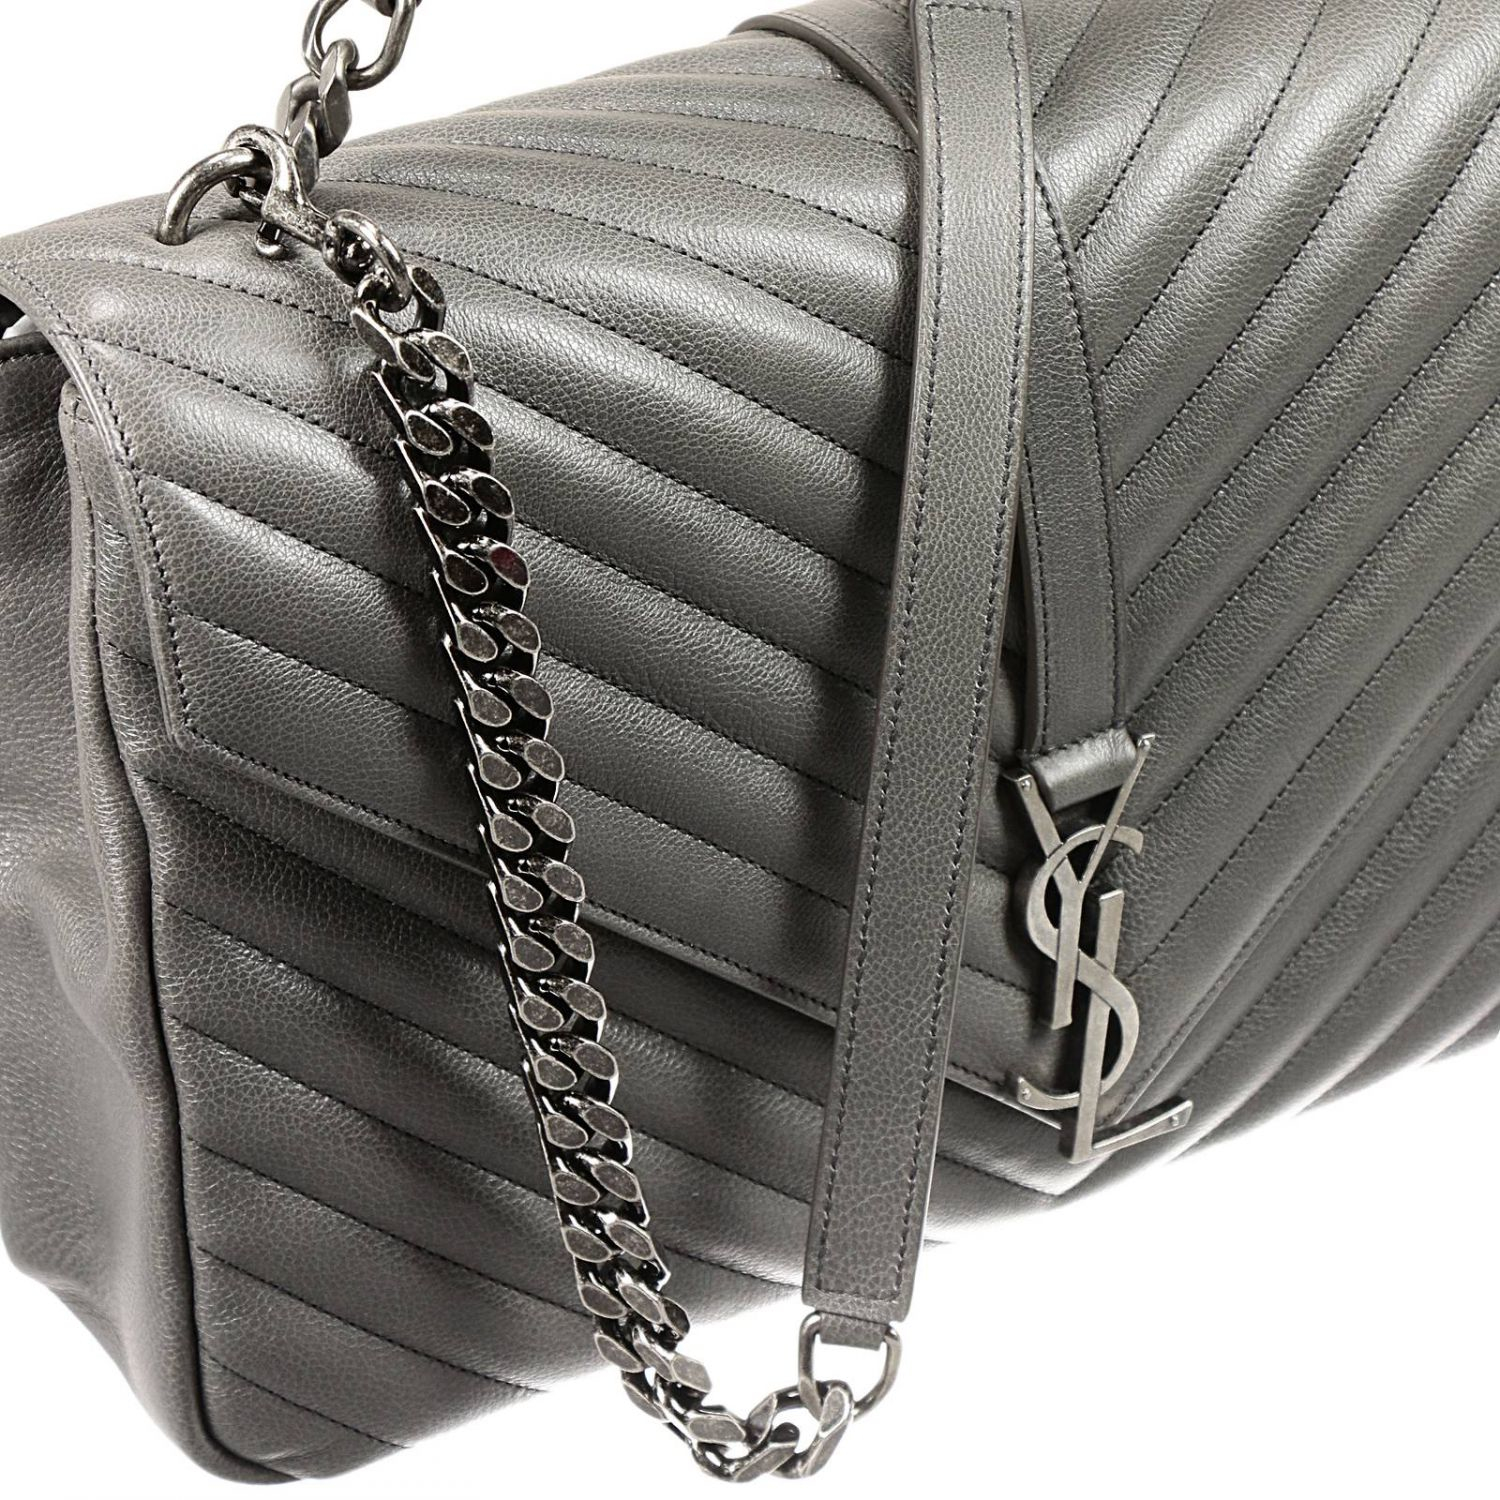 a9c691980b17 Lyst - Saint Laurent Borsa Ysl Bo Mng College L Ginger Fi in Gray